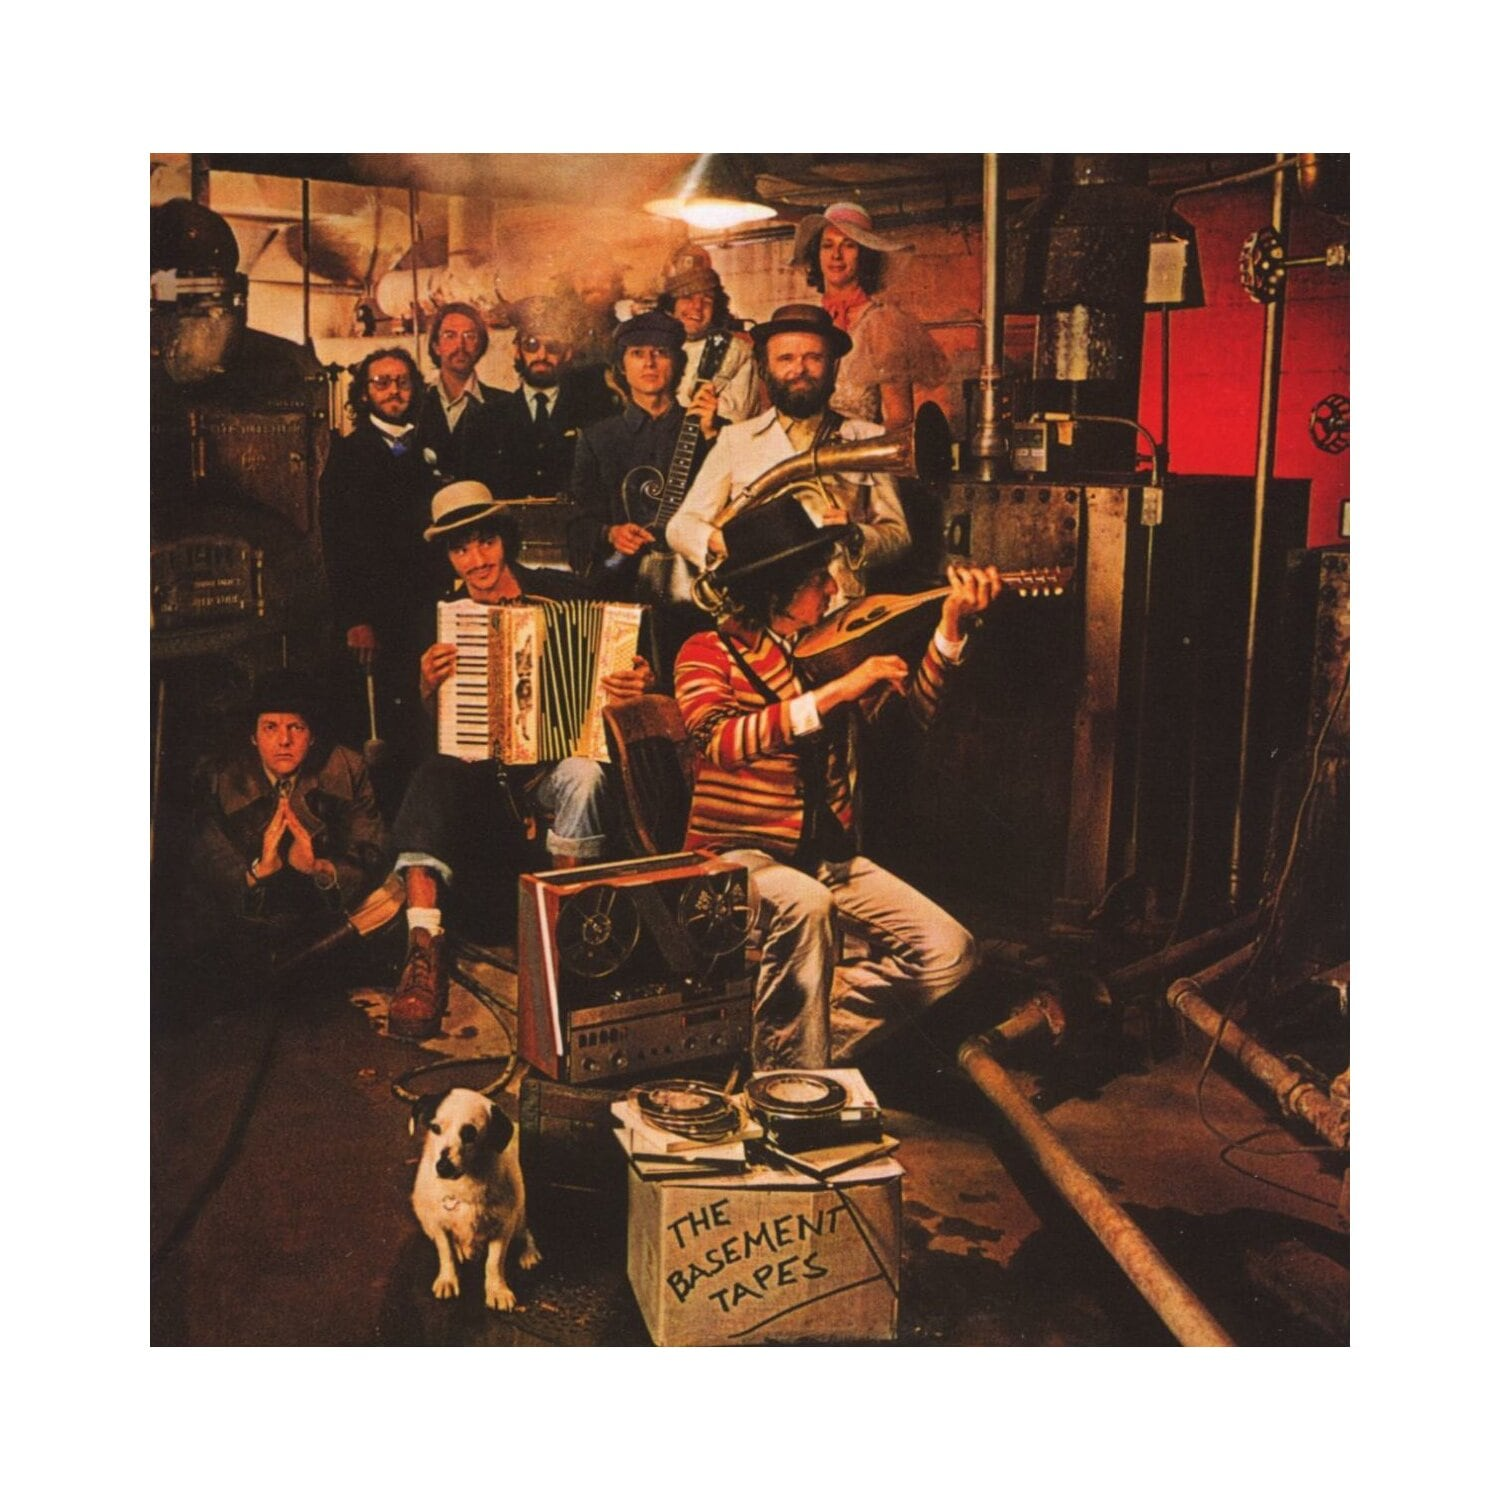 The Basement Tapes Jewel Case Version